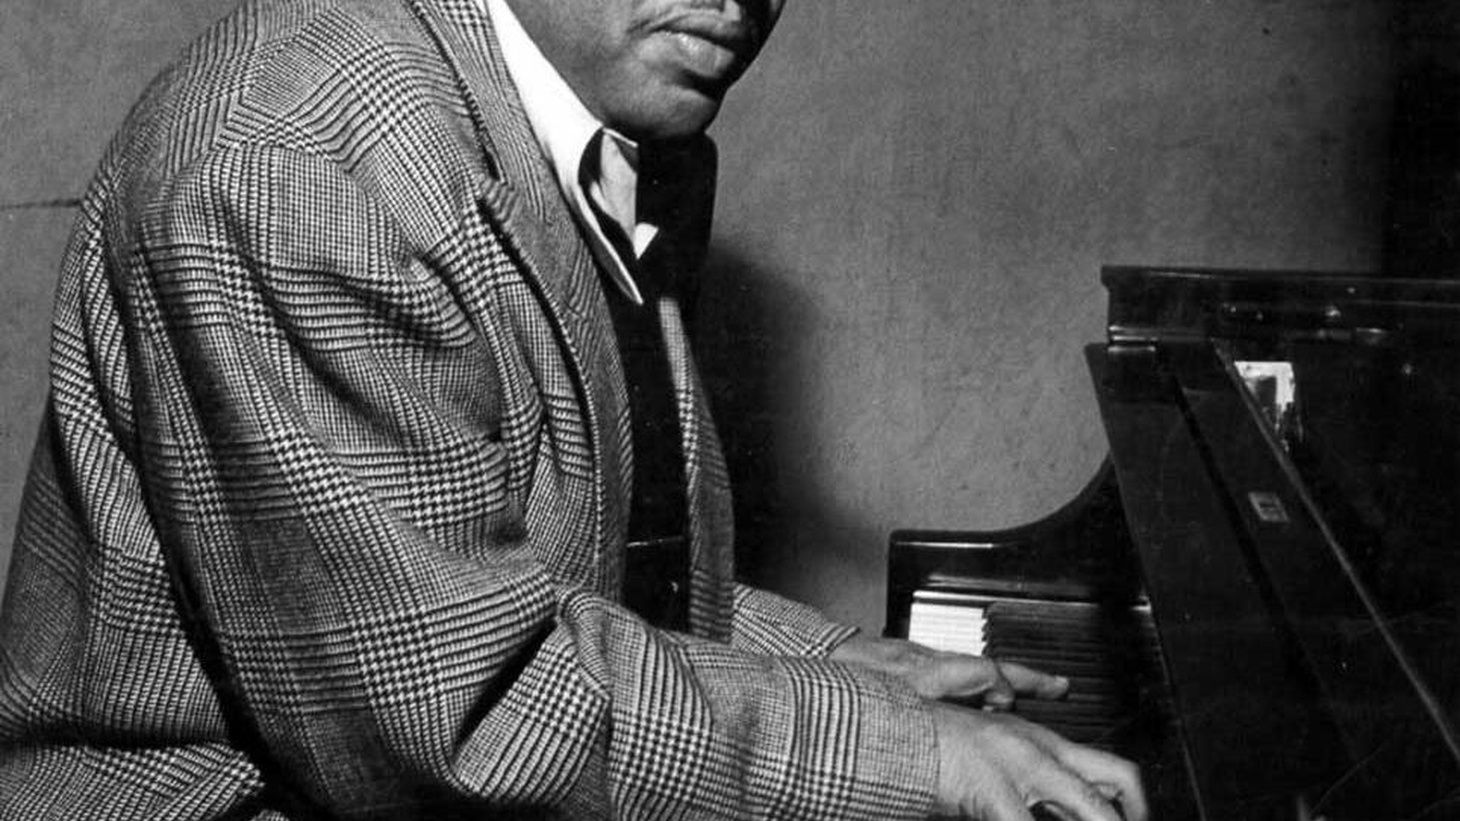 """As one of the most important and influential jazz musicians of the 20th Century, Edward """"Duke"""" Ellington led a band from the early 1920s until his death in 1974. He composed new material relentlessly, specifically writing to get the best out of his band members. At the height of his career in 1960, Ellington decided to devote an album to arrangements of other composers' work."""